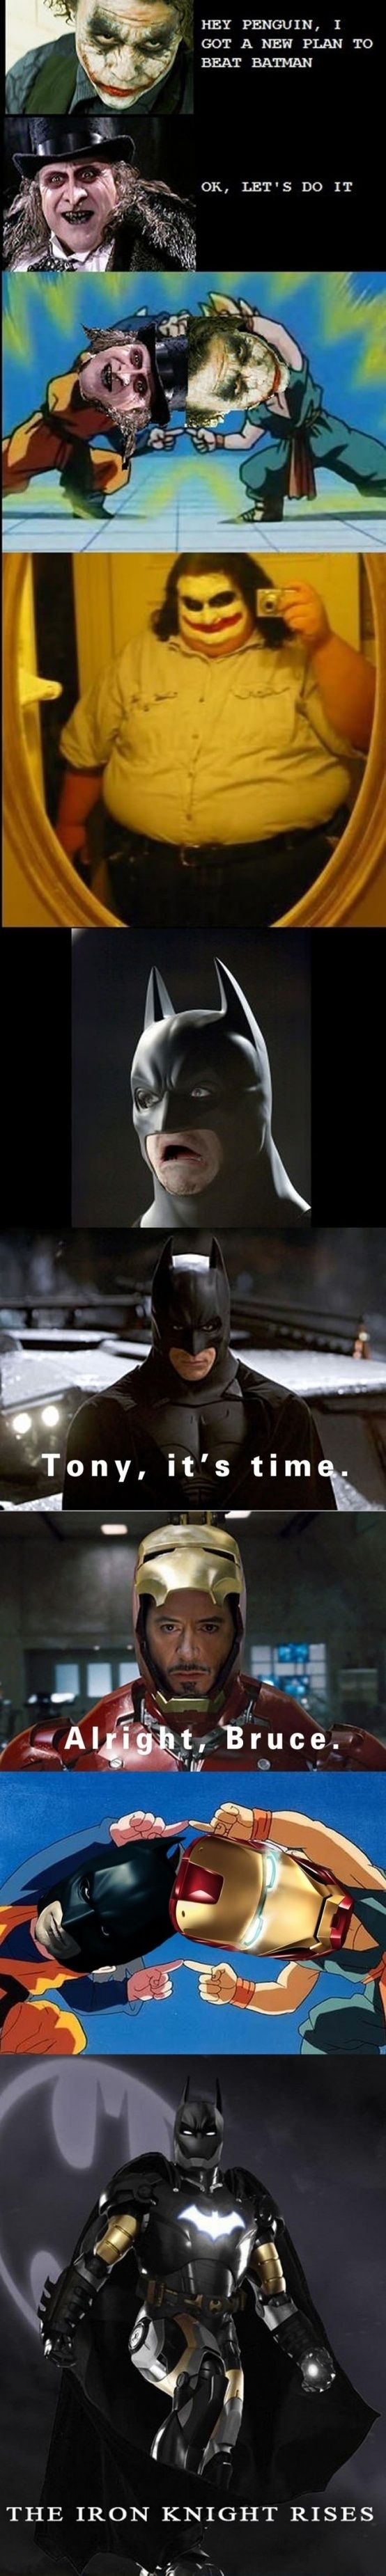 funny batman pictures, the dark knight rises